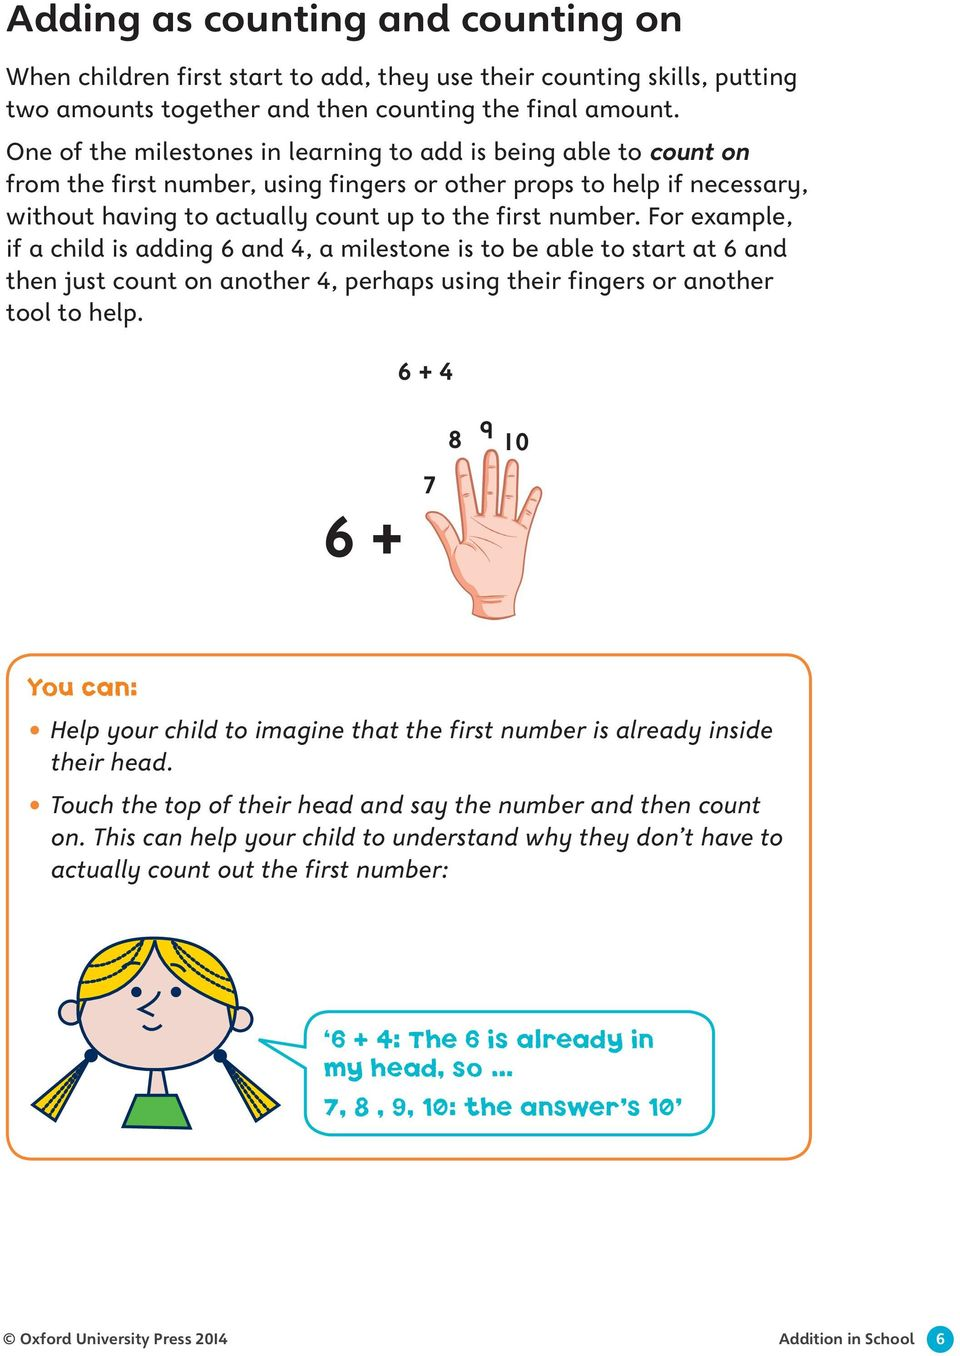 For example, if a child is adding 6 and 4, a milestone is to be able to start at 6 and then just count on another 4, perhaps using their fingers or another tool to help.